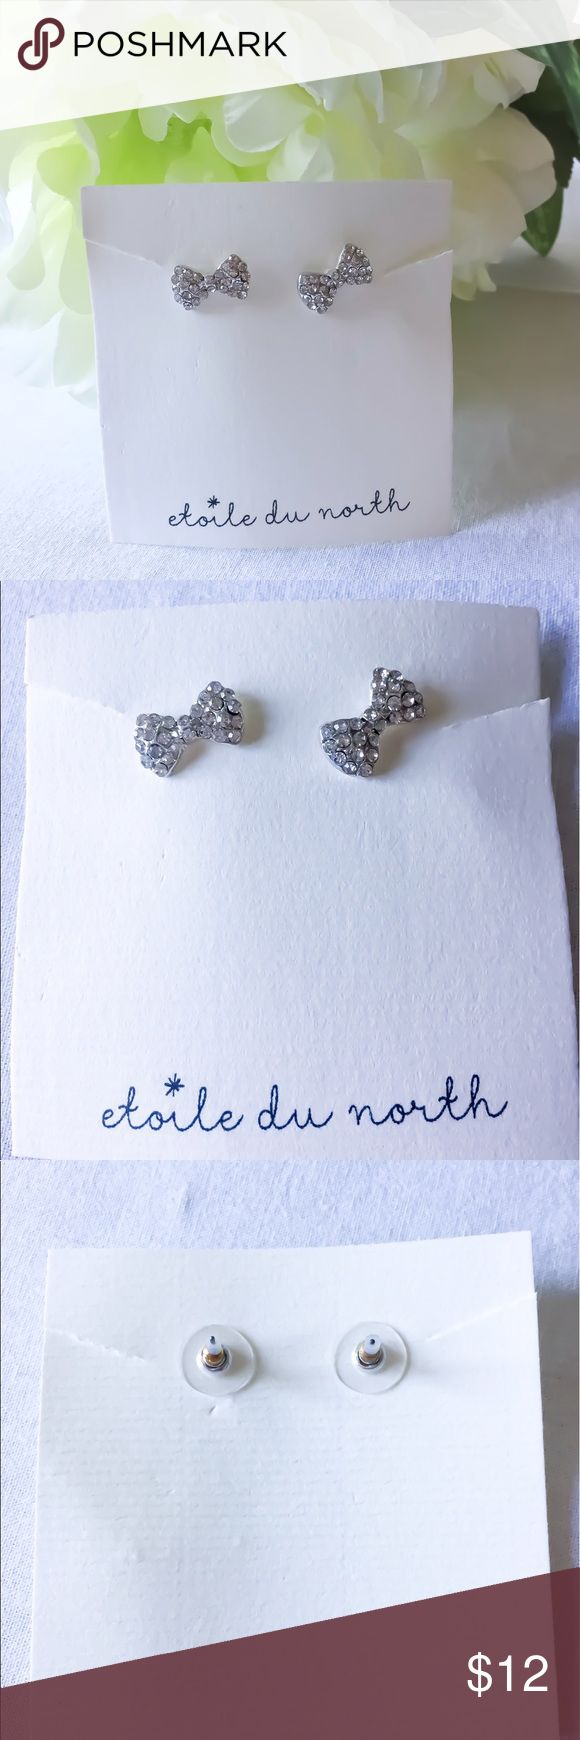 Bitty Silver and Diamond Encrusted Bow Earrings! Bitty Silver and Diamond Encrusted Bow Earrings! New! Very Kate Spade! Jewelry Earrings